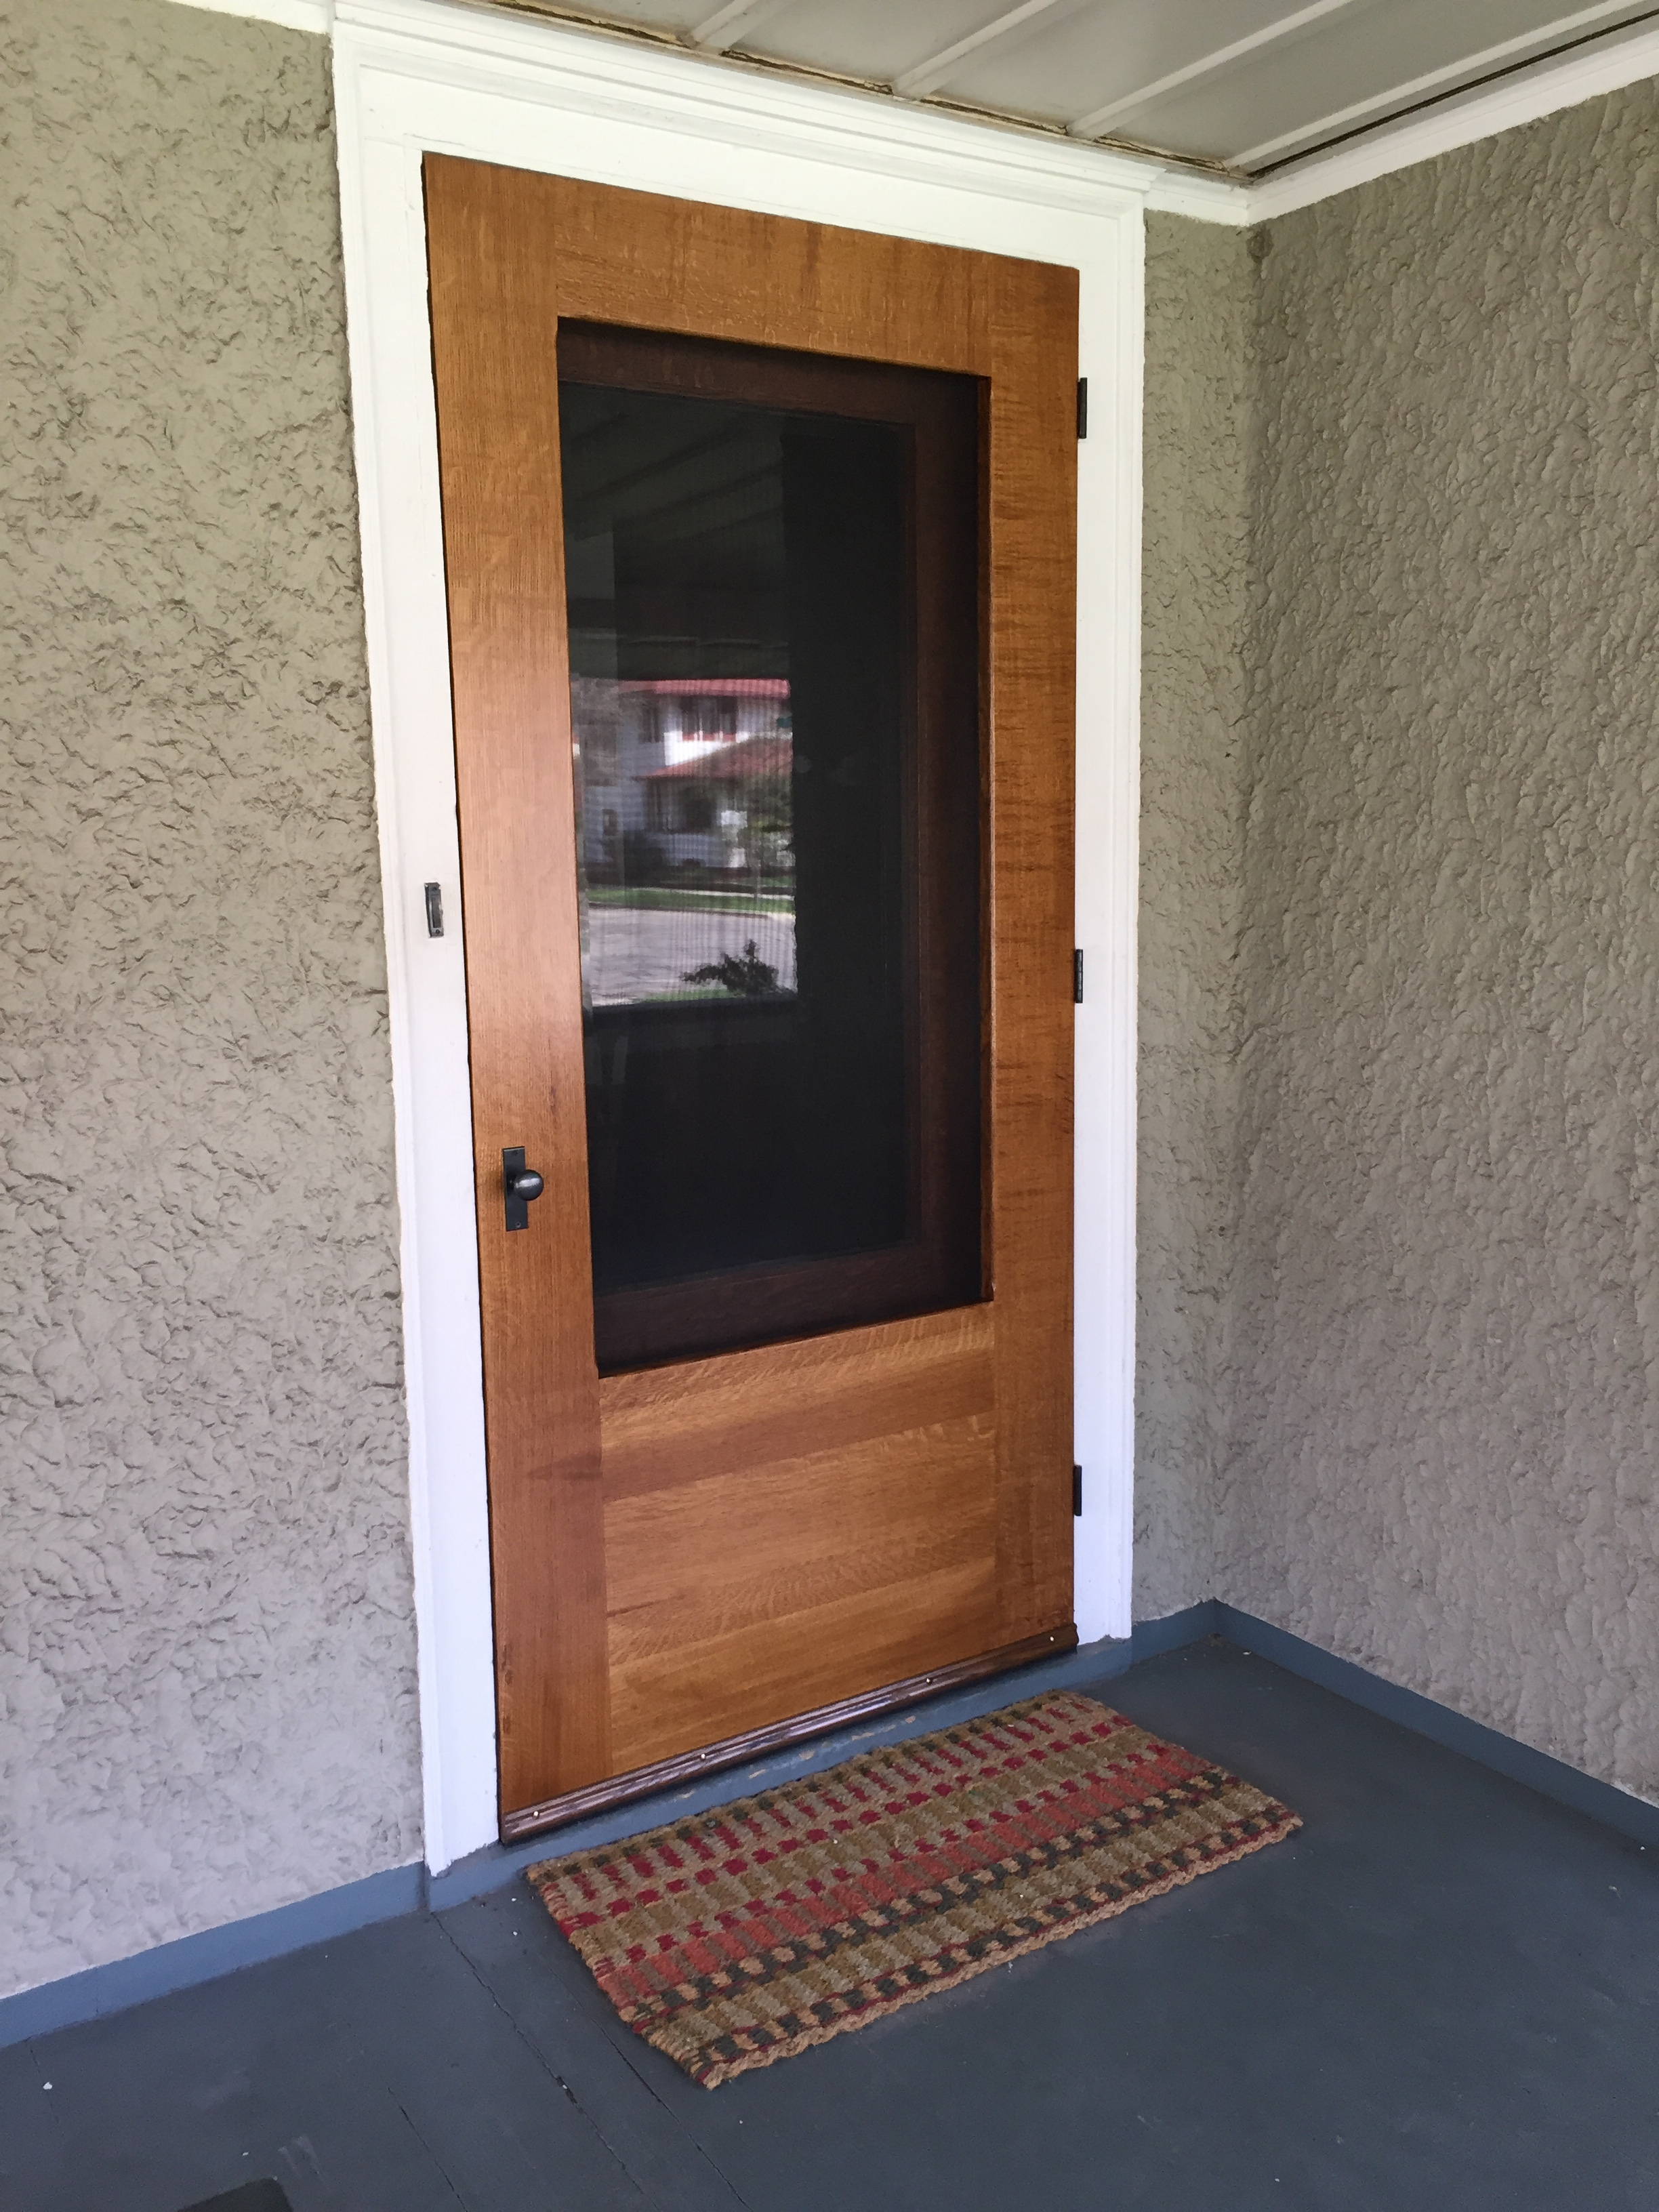 A custom quartersawn white oak storm door completed by HomeCure in 2016.